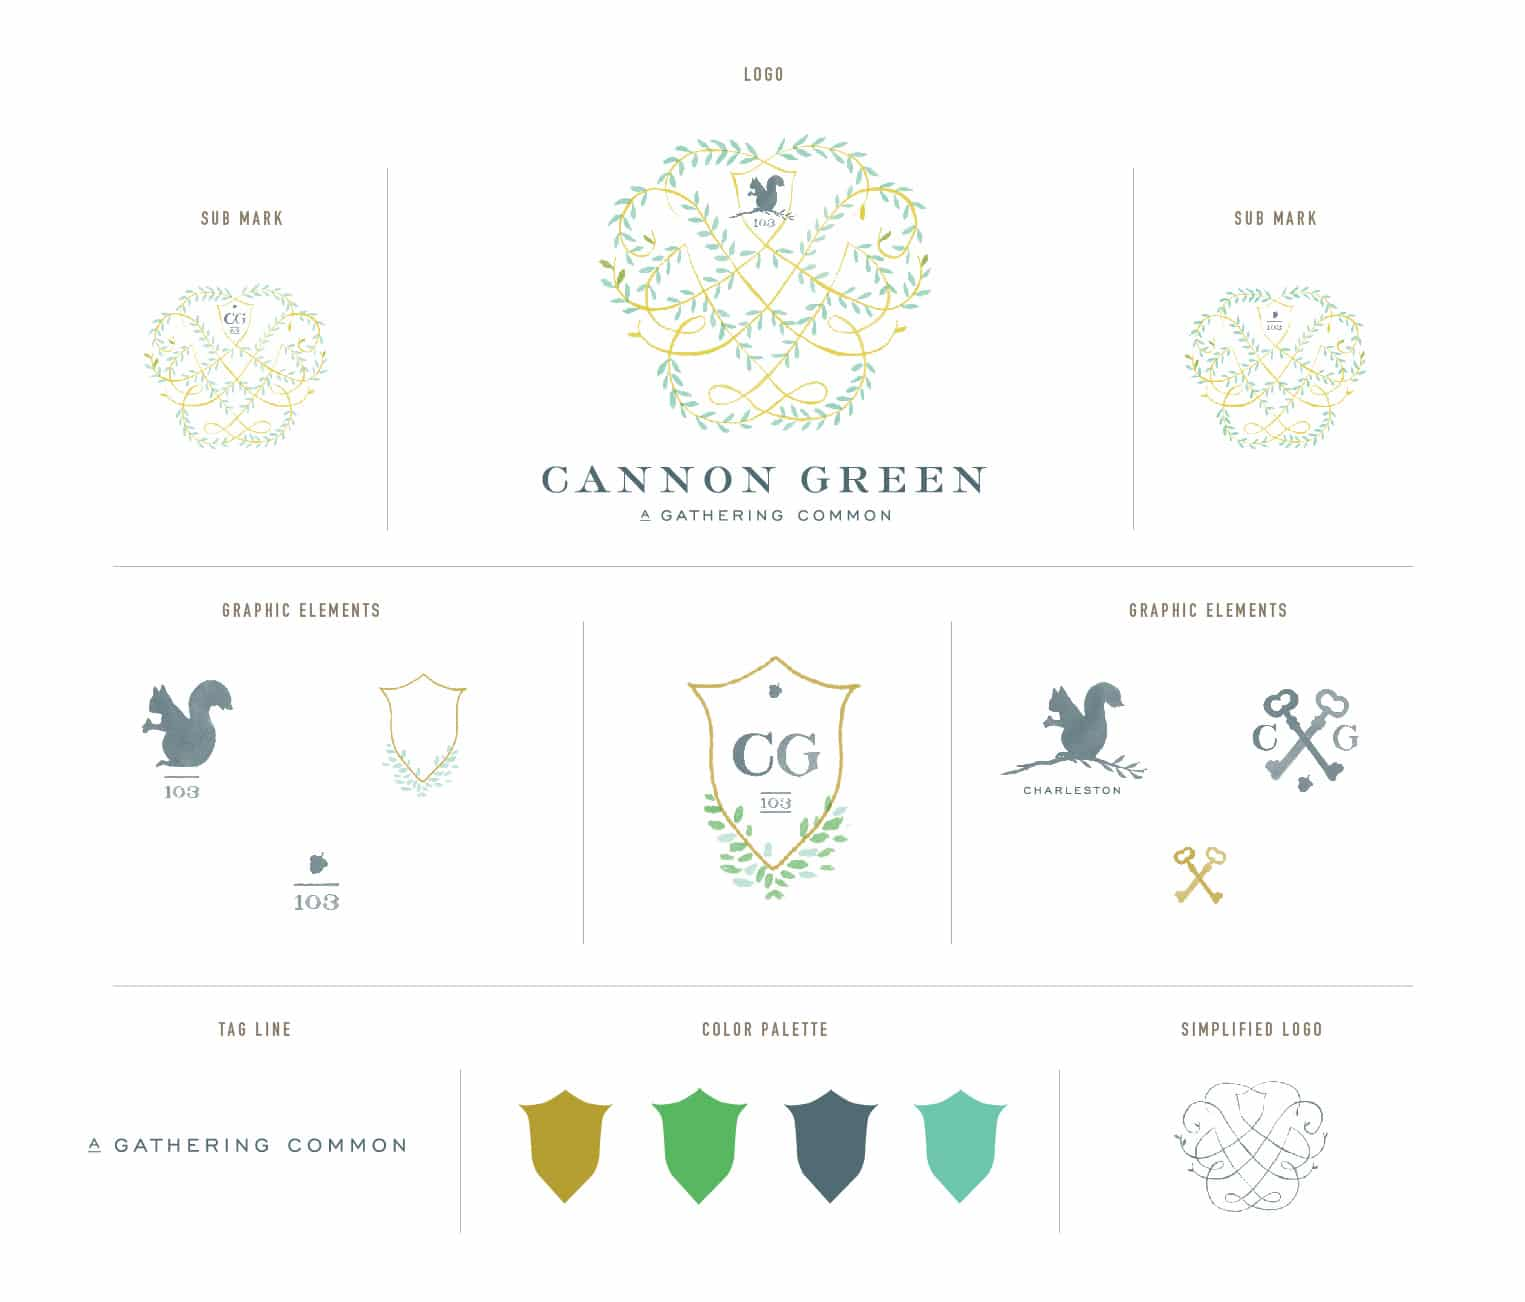 CannonGreen_blogpost